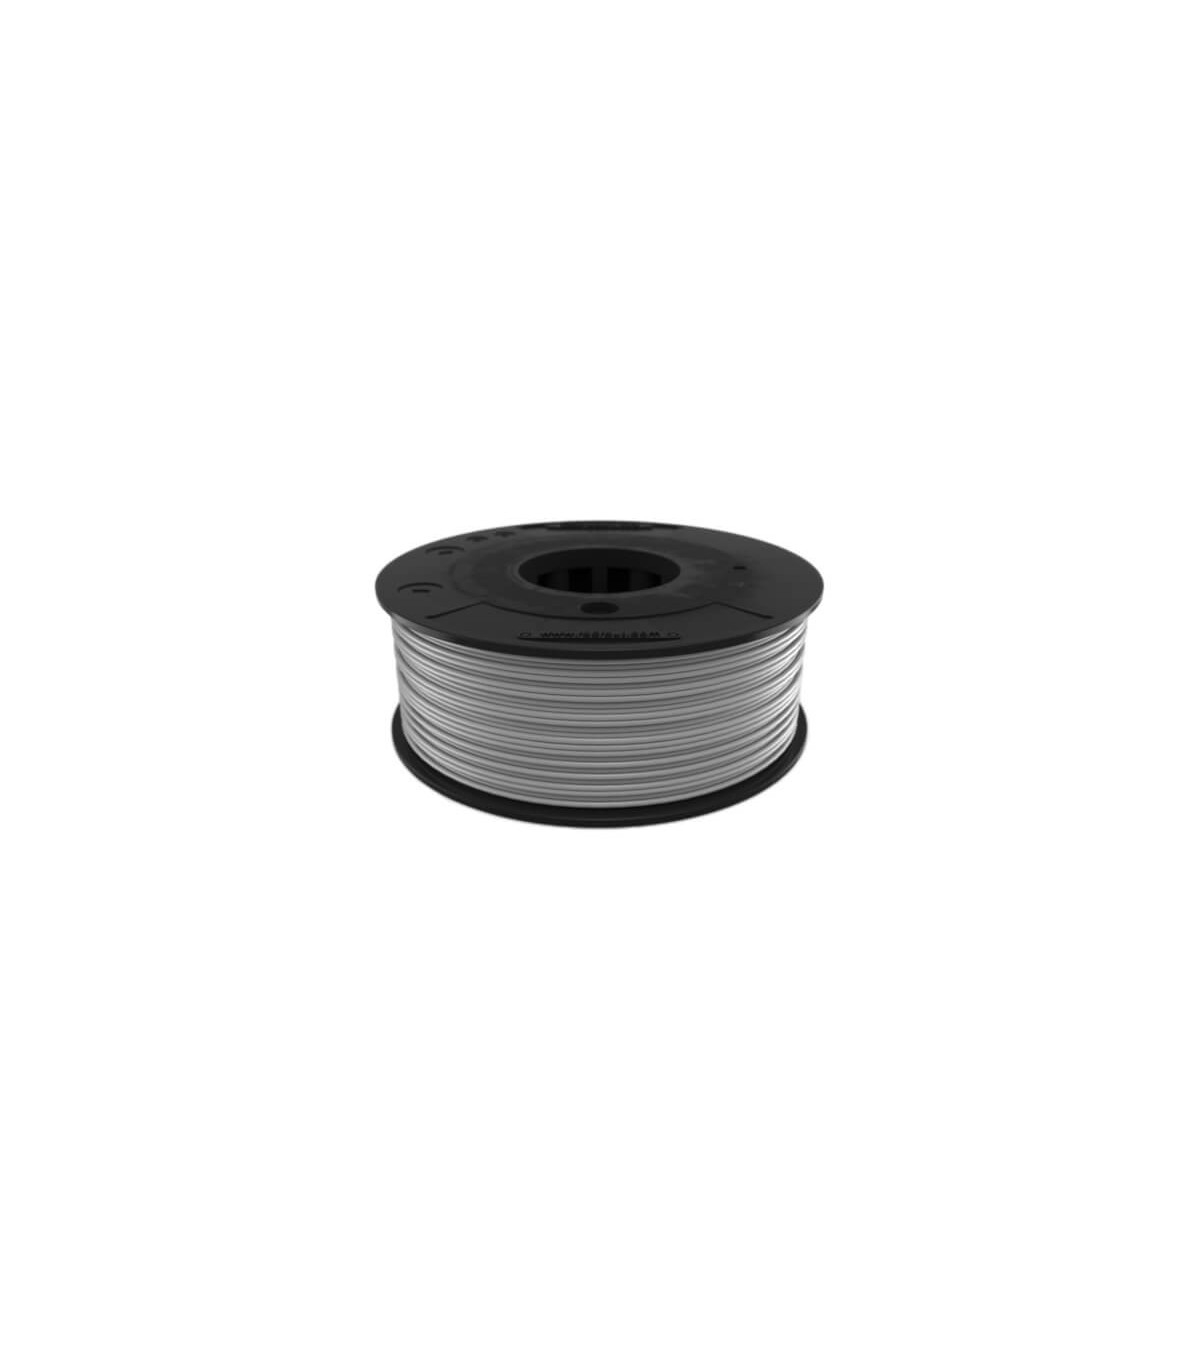 FilaFlex Grey 82A TPE Filament 1.75 mm 250g